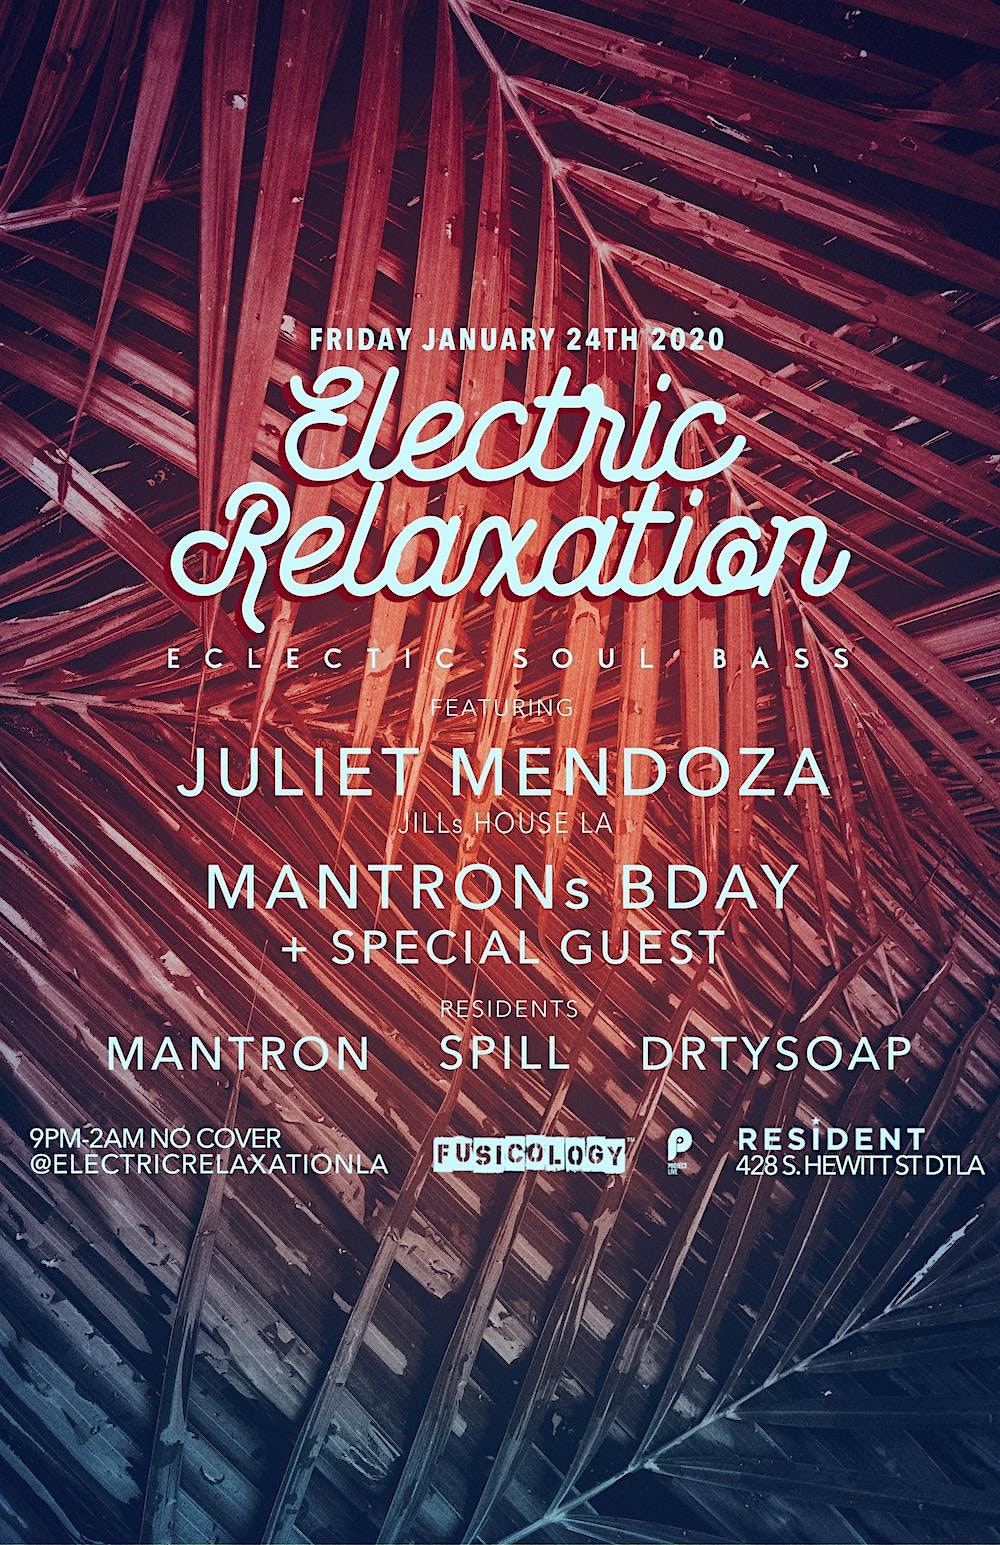 Electric Relaxation: Bassey dance rhythms ft. DJ Juliet Mendoza (No Cover)